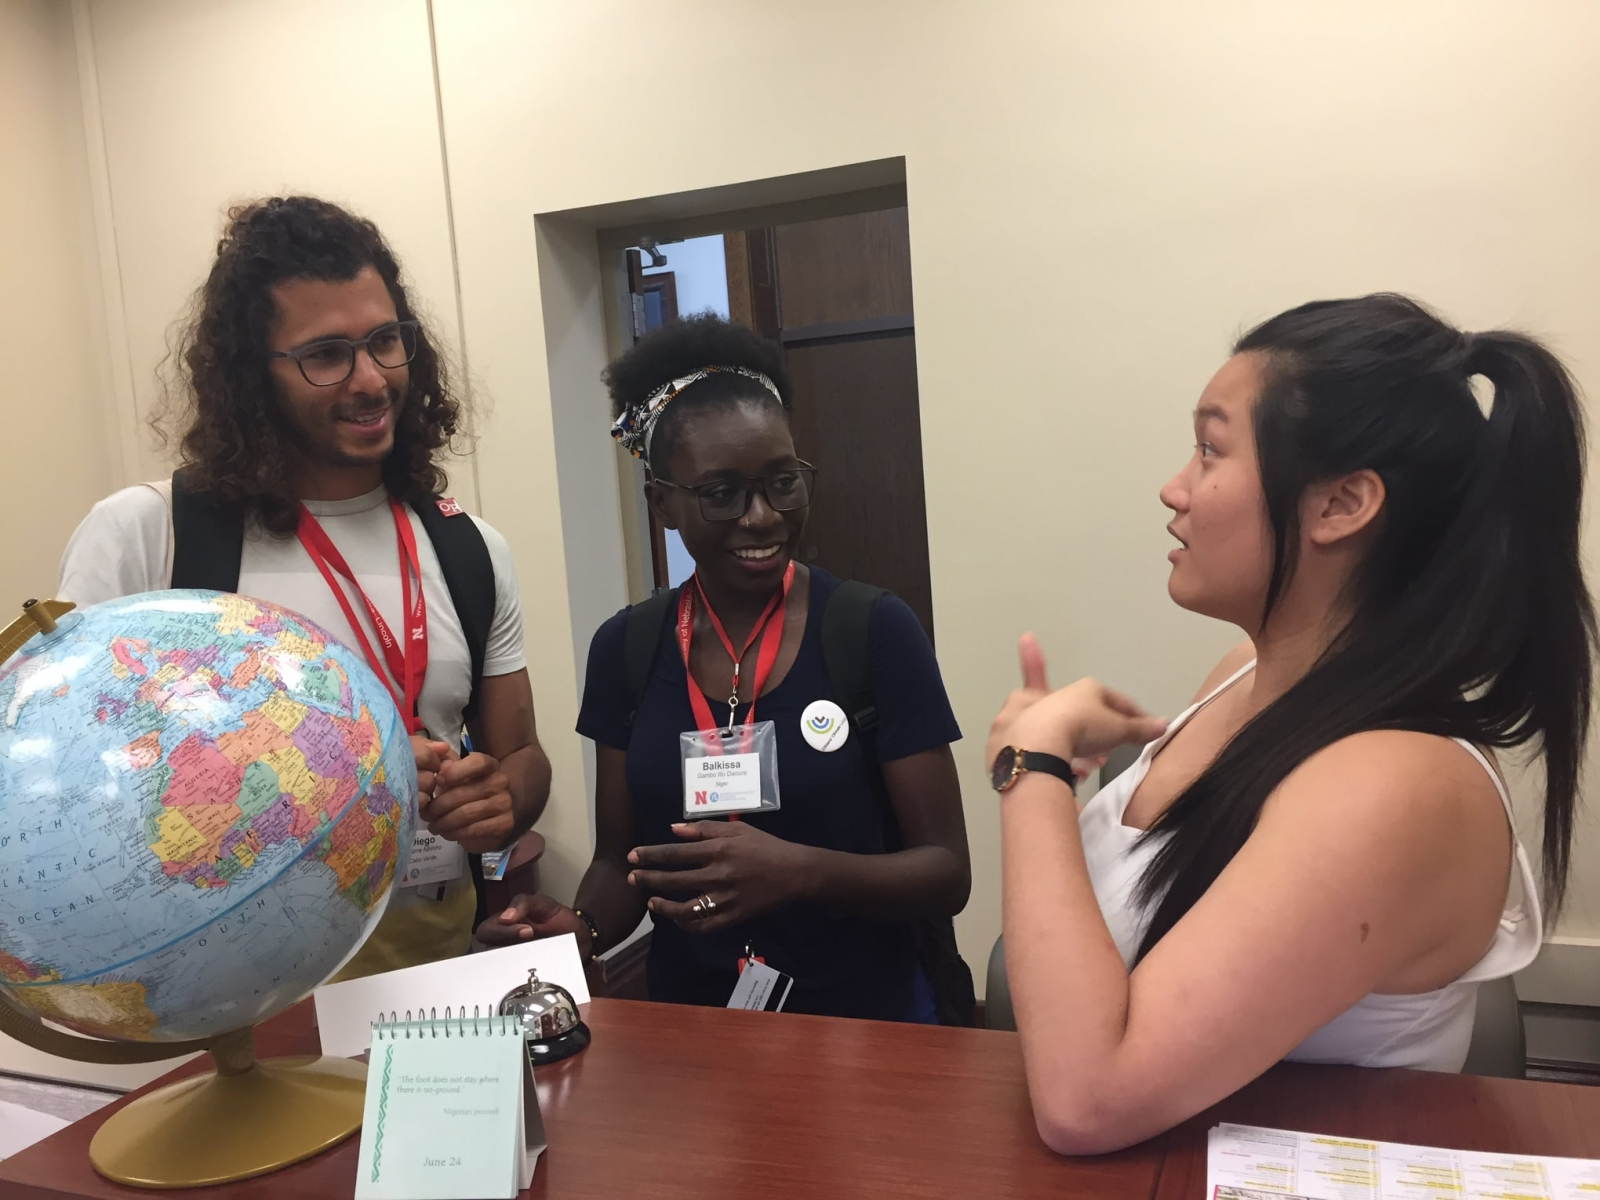 Yi Xuen Tay, a former intern and later staff member, engages visiting Mandela Washington Fellows, Diego and Balkissa (from Cabo Verde and Niger, respectively) in the space which will now serve as the physical Global Learning Hub, in Agricultural Hall 202